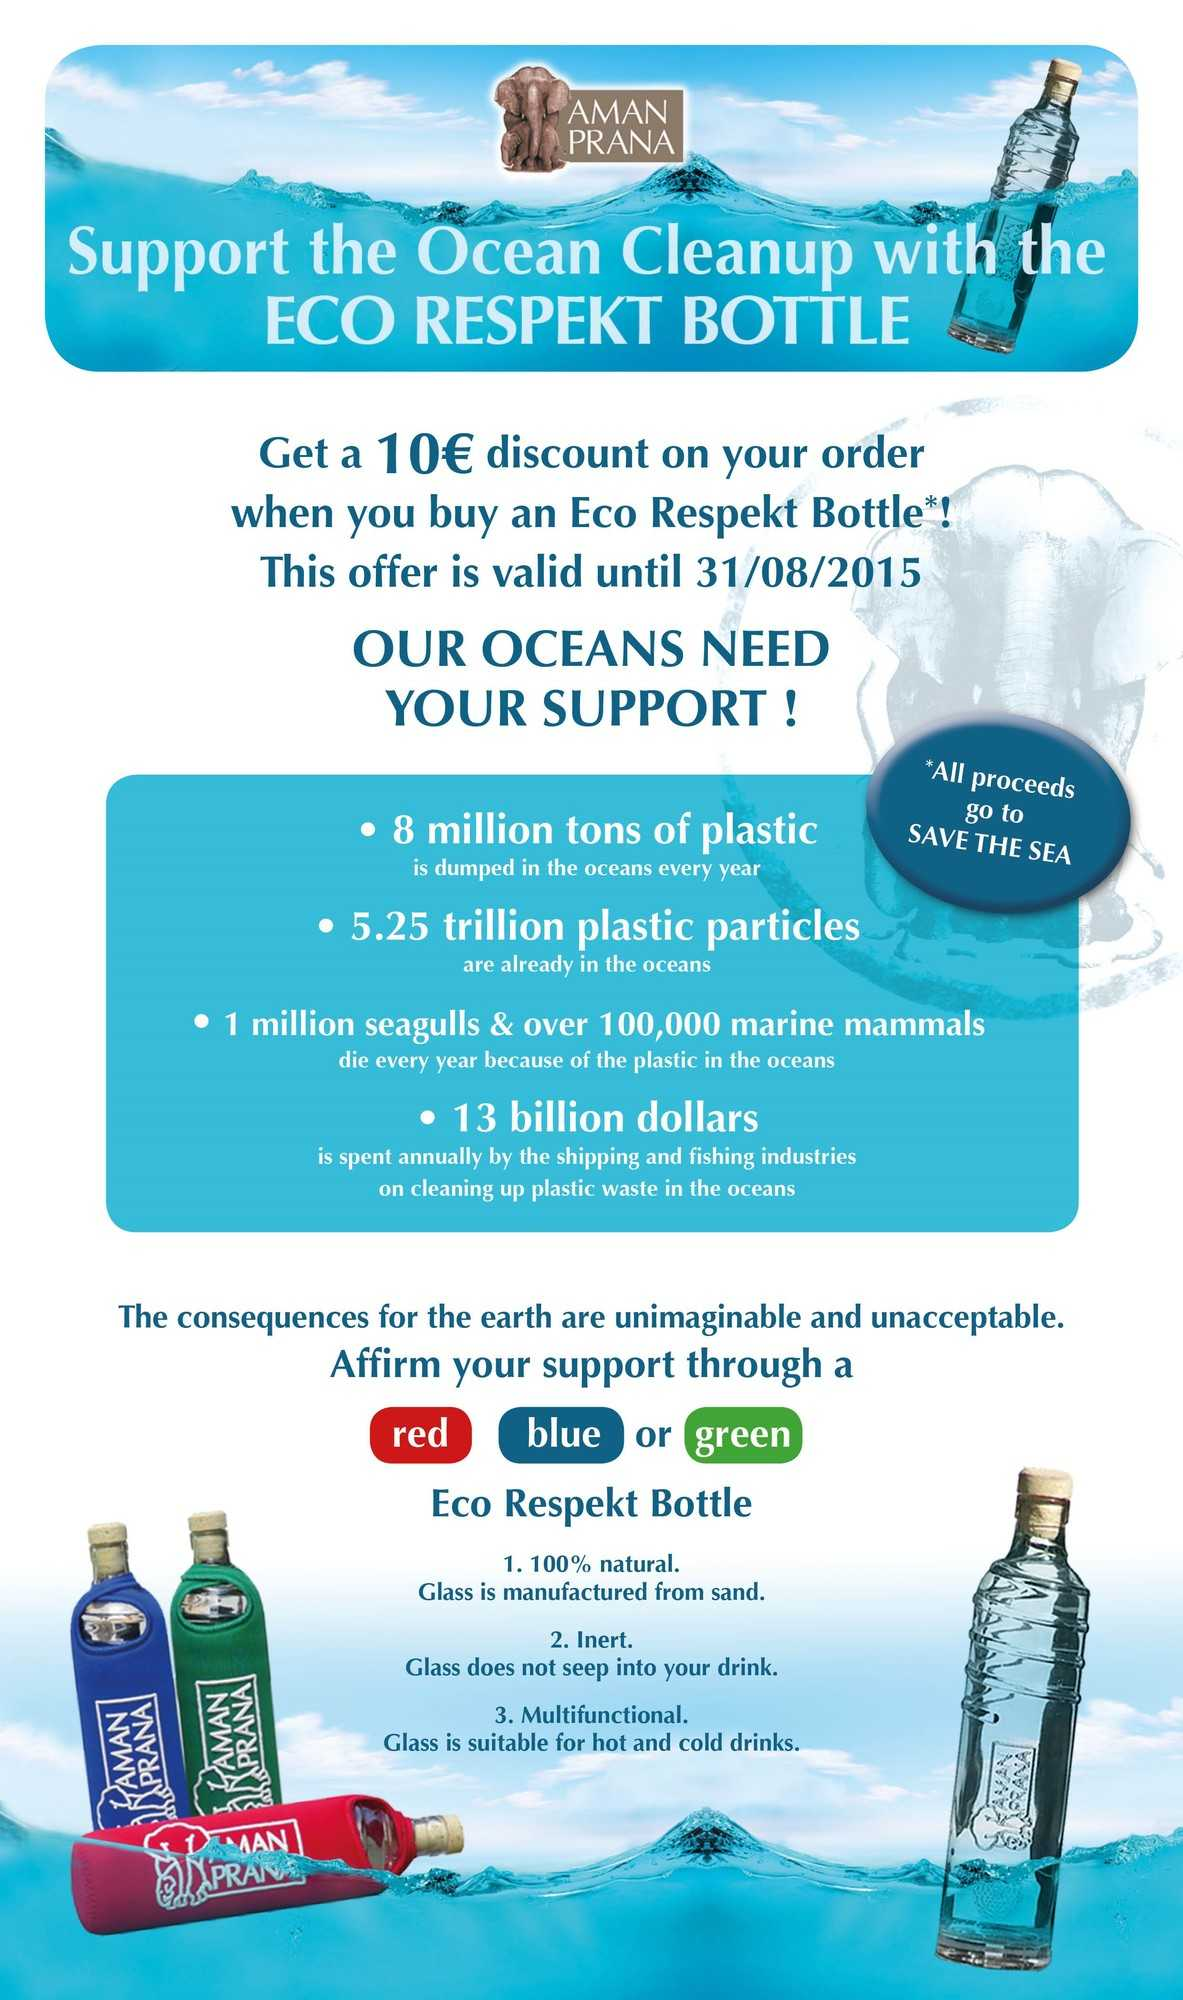 Amanprana supports the Ocean Cleanup with its Eco Respekt Bottle